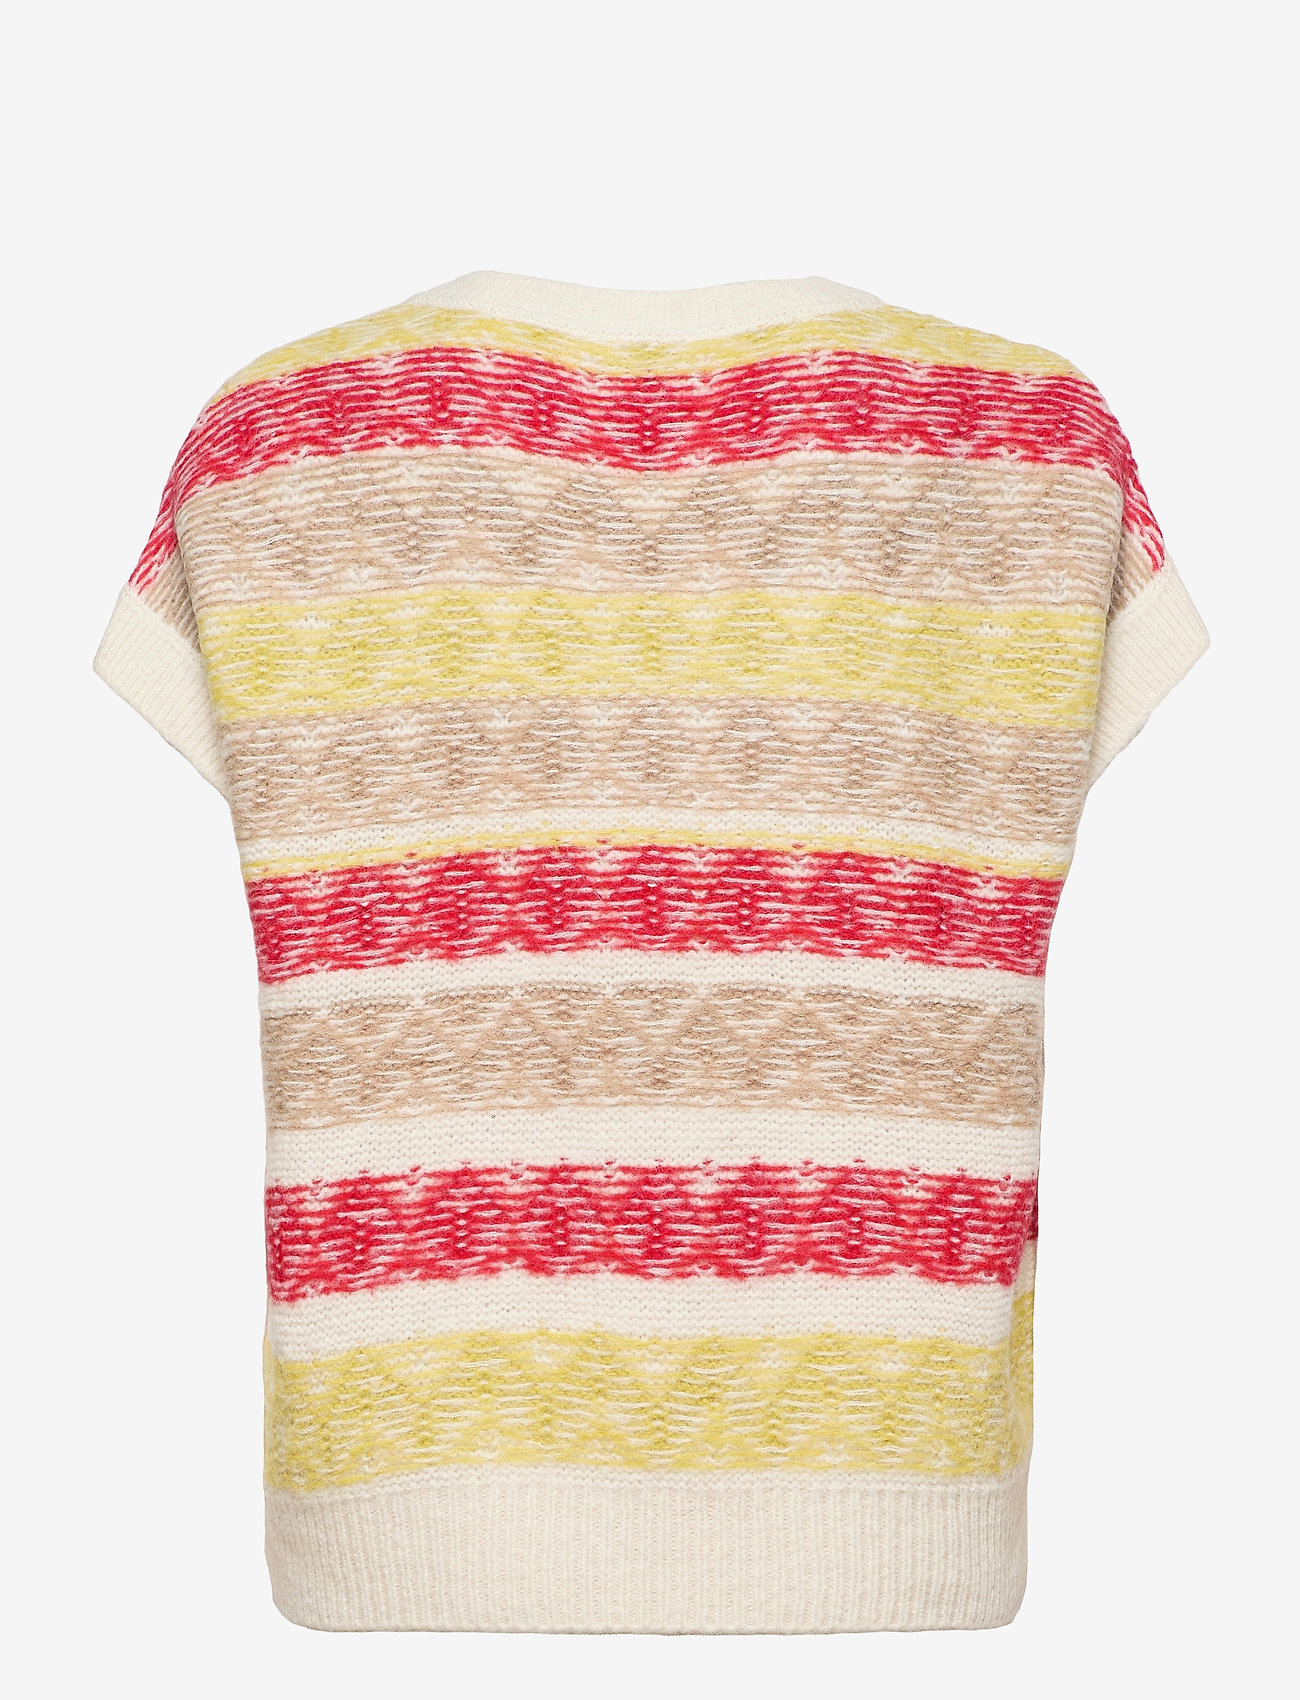 Closed - women´s knit - knitted vests - ivory - 1